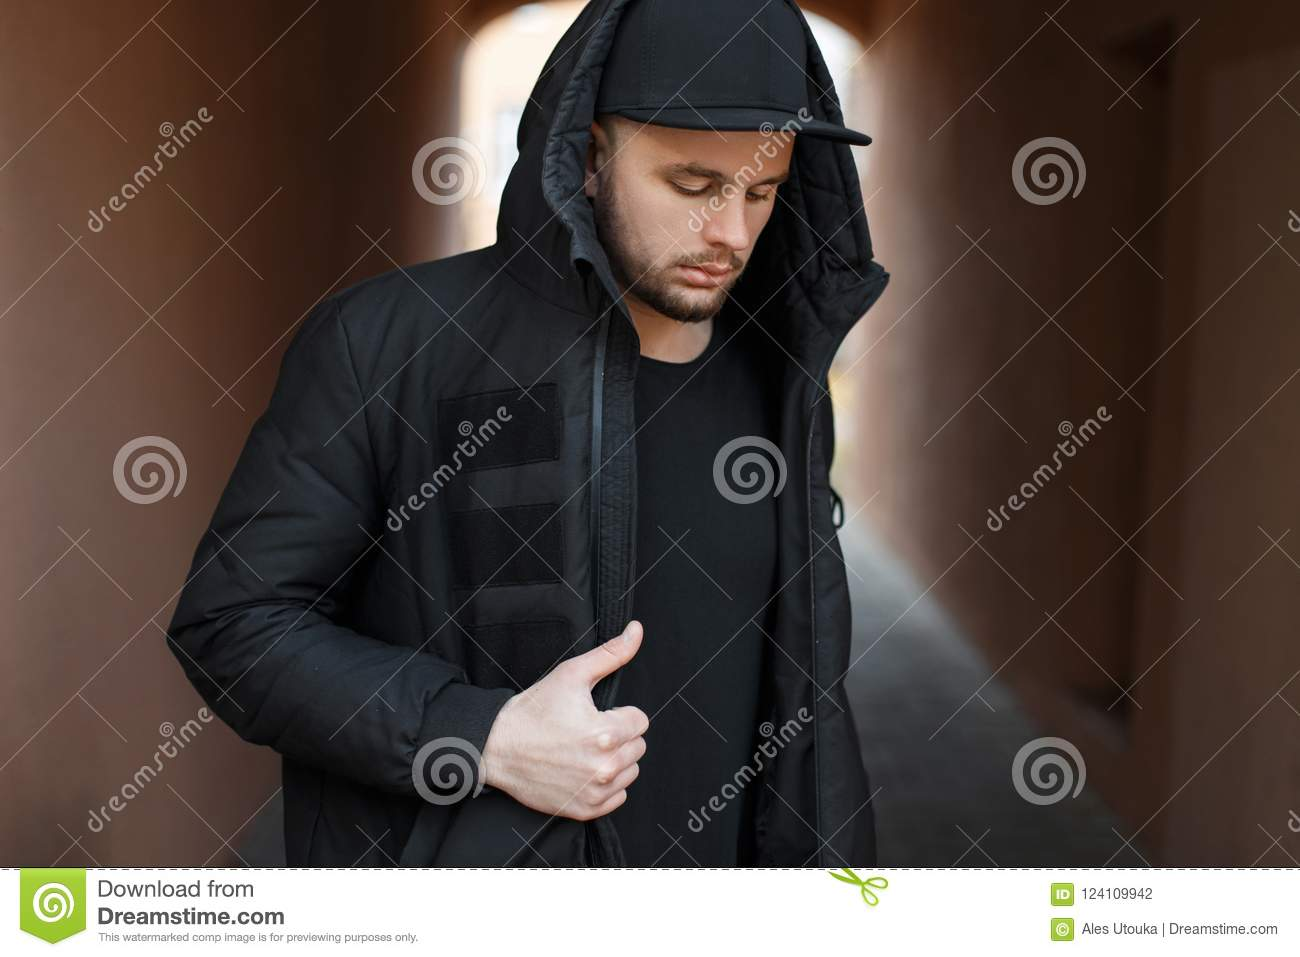 8a2c7735997 Fashionable handsome young man with a black baseball cap in a hood with a winter  jacket on the street